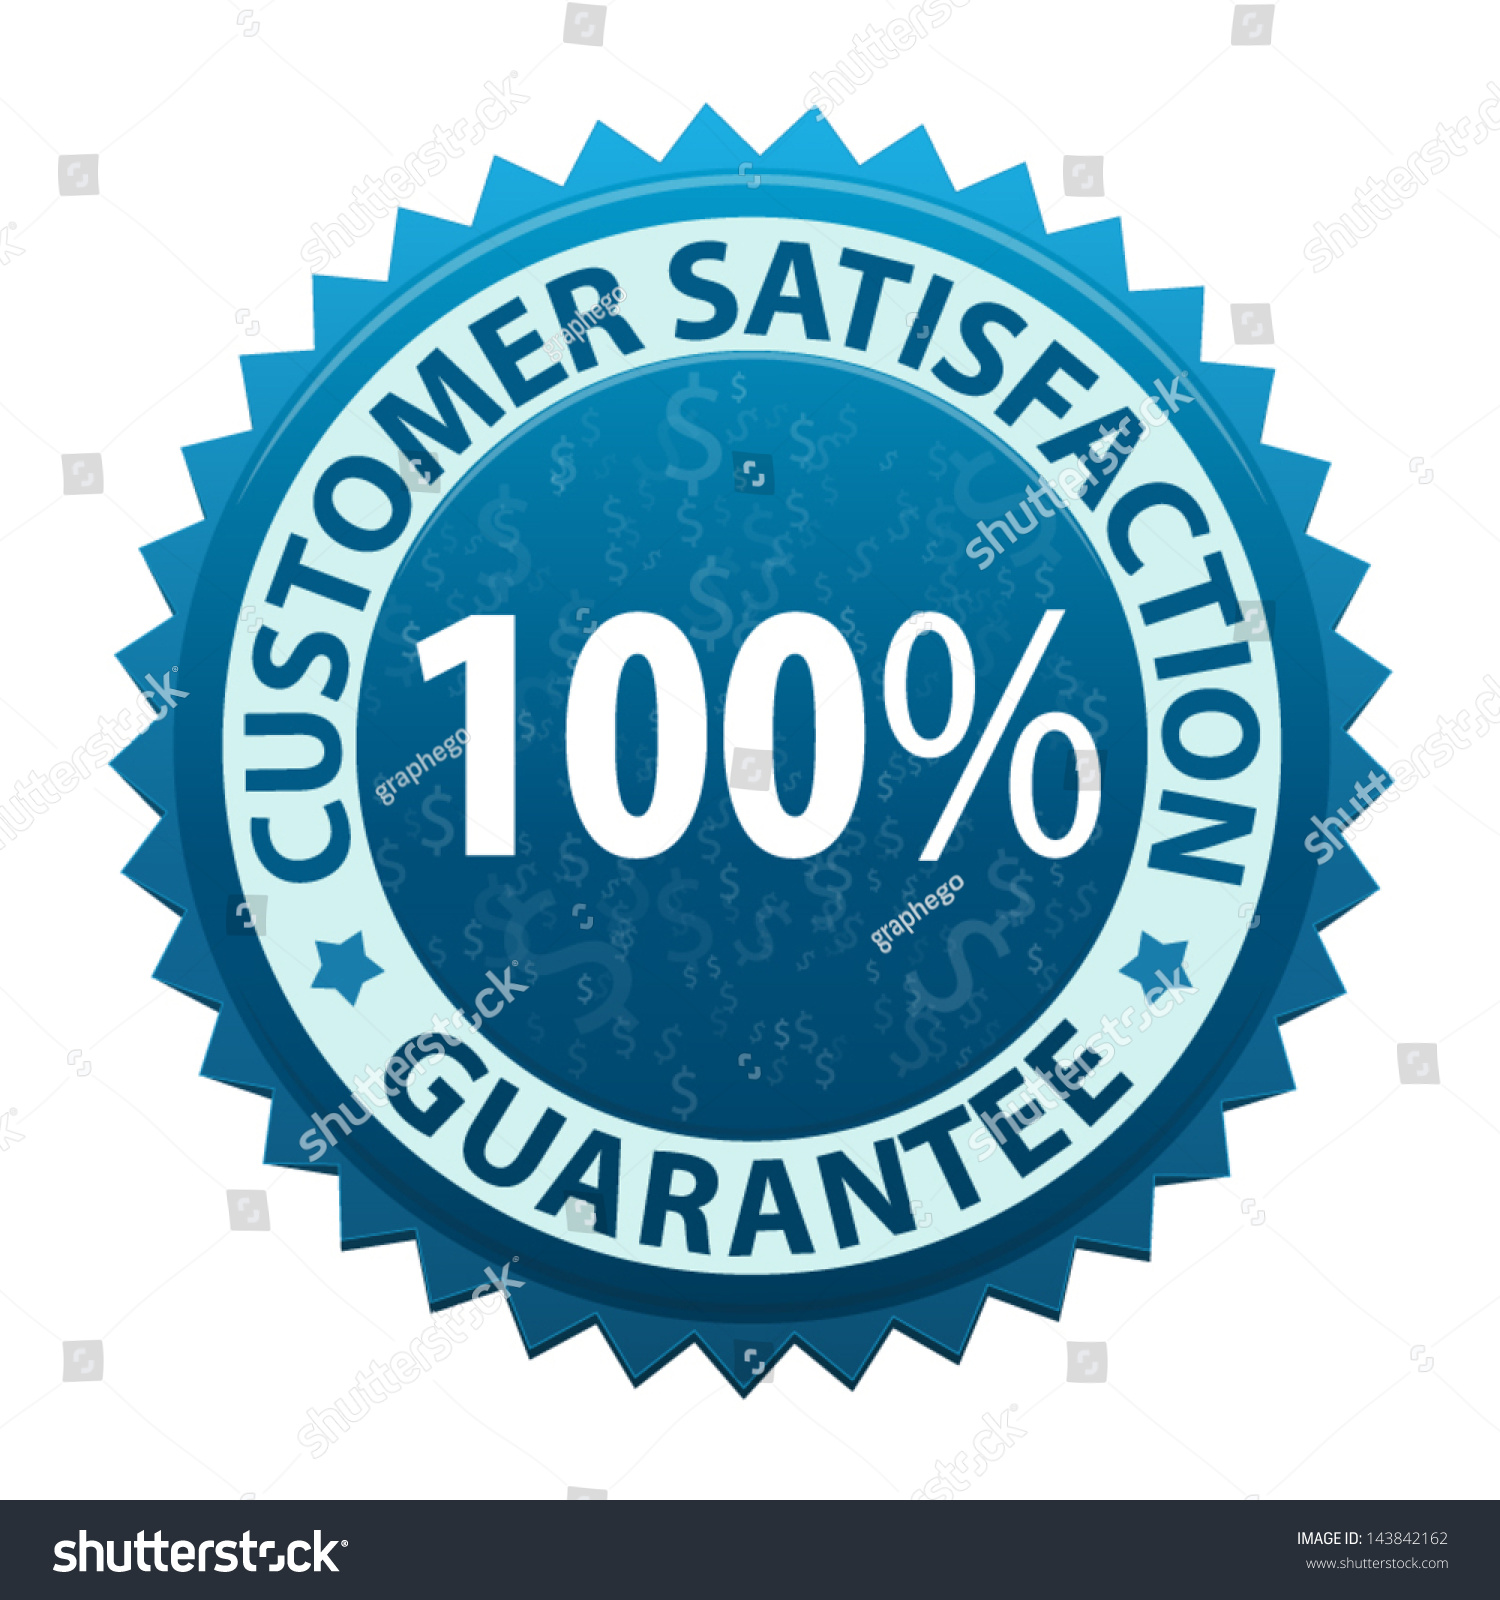 Label text customer satisfaction guarantee 100 stock vector label with text customer satisfaction guarantee 100 percent icon or symbol isolated on white background buycottarizona Image collections